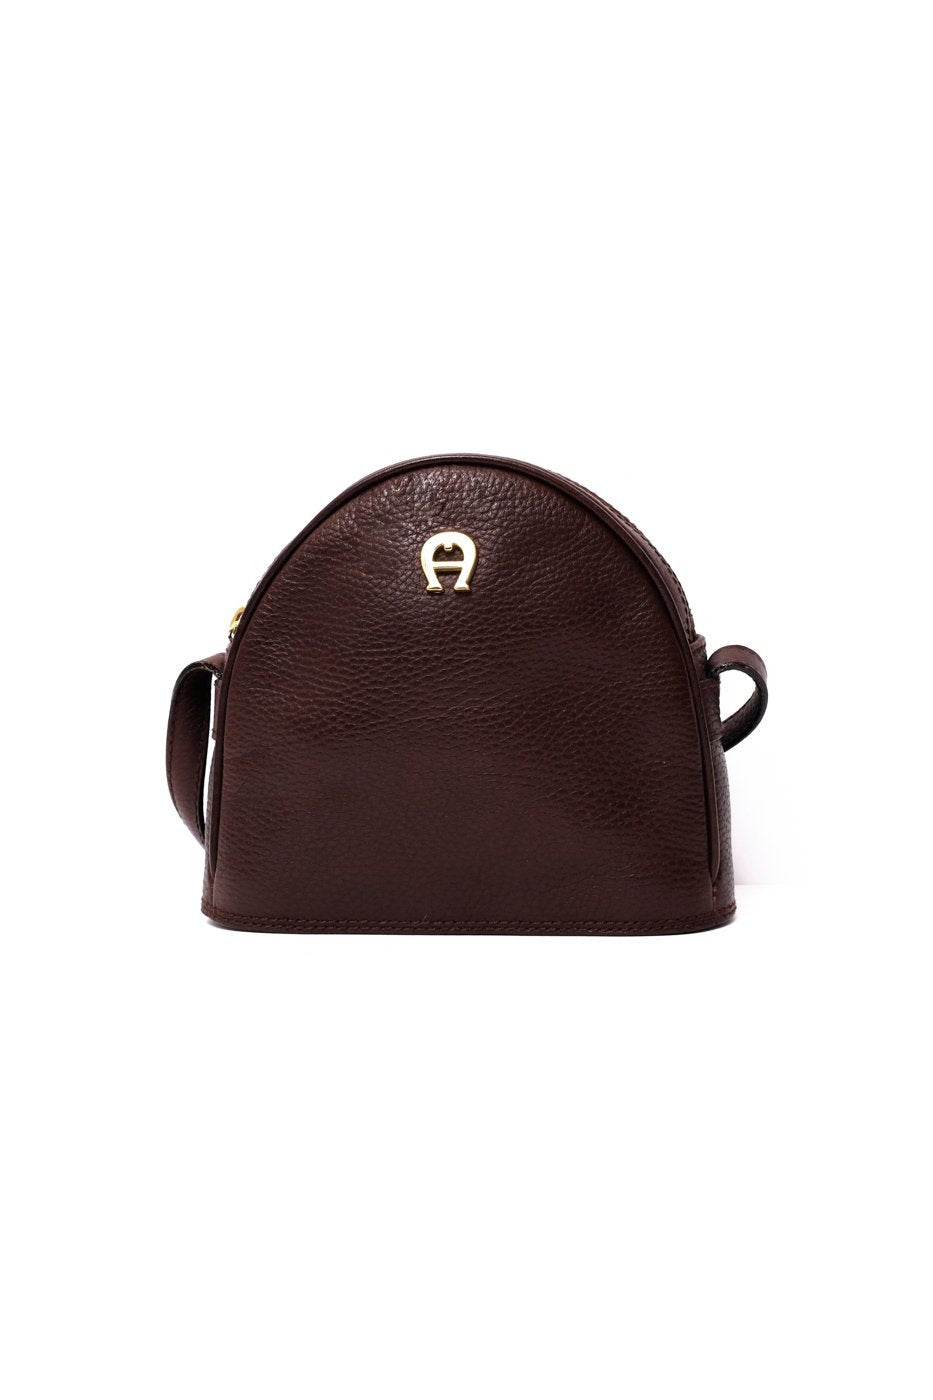 0327_AIGNER BROWN HALF MOON BAG